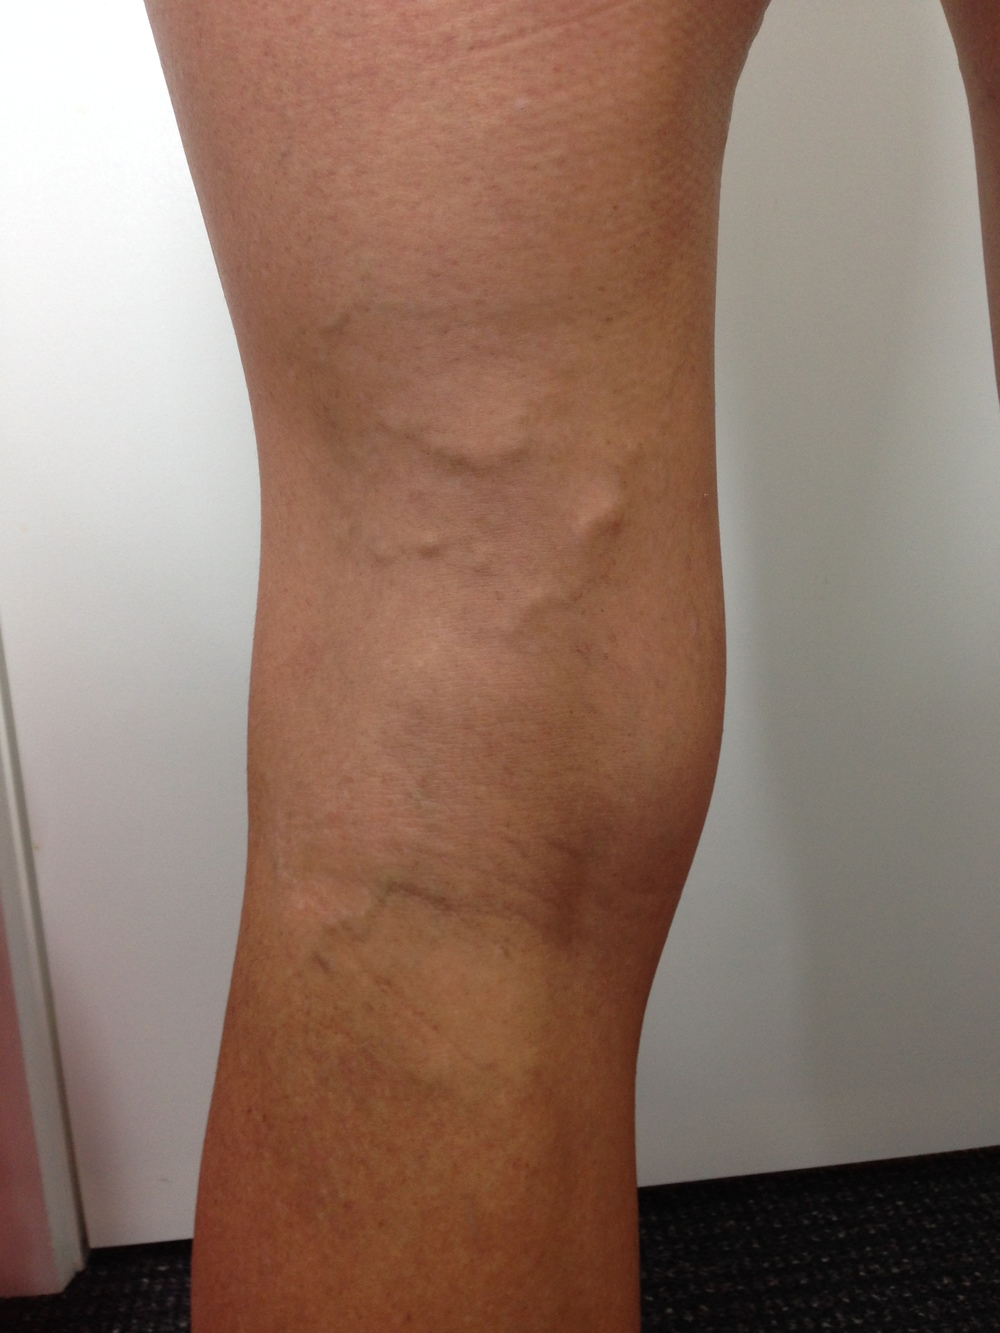 Spider vein removal brisbane : St deal